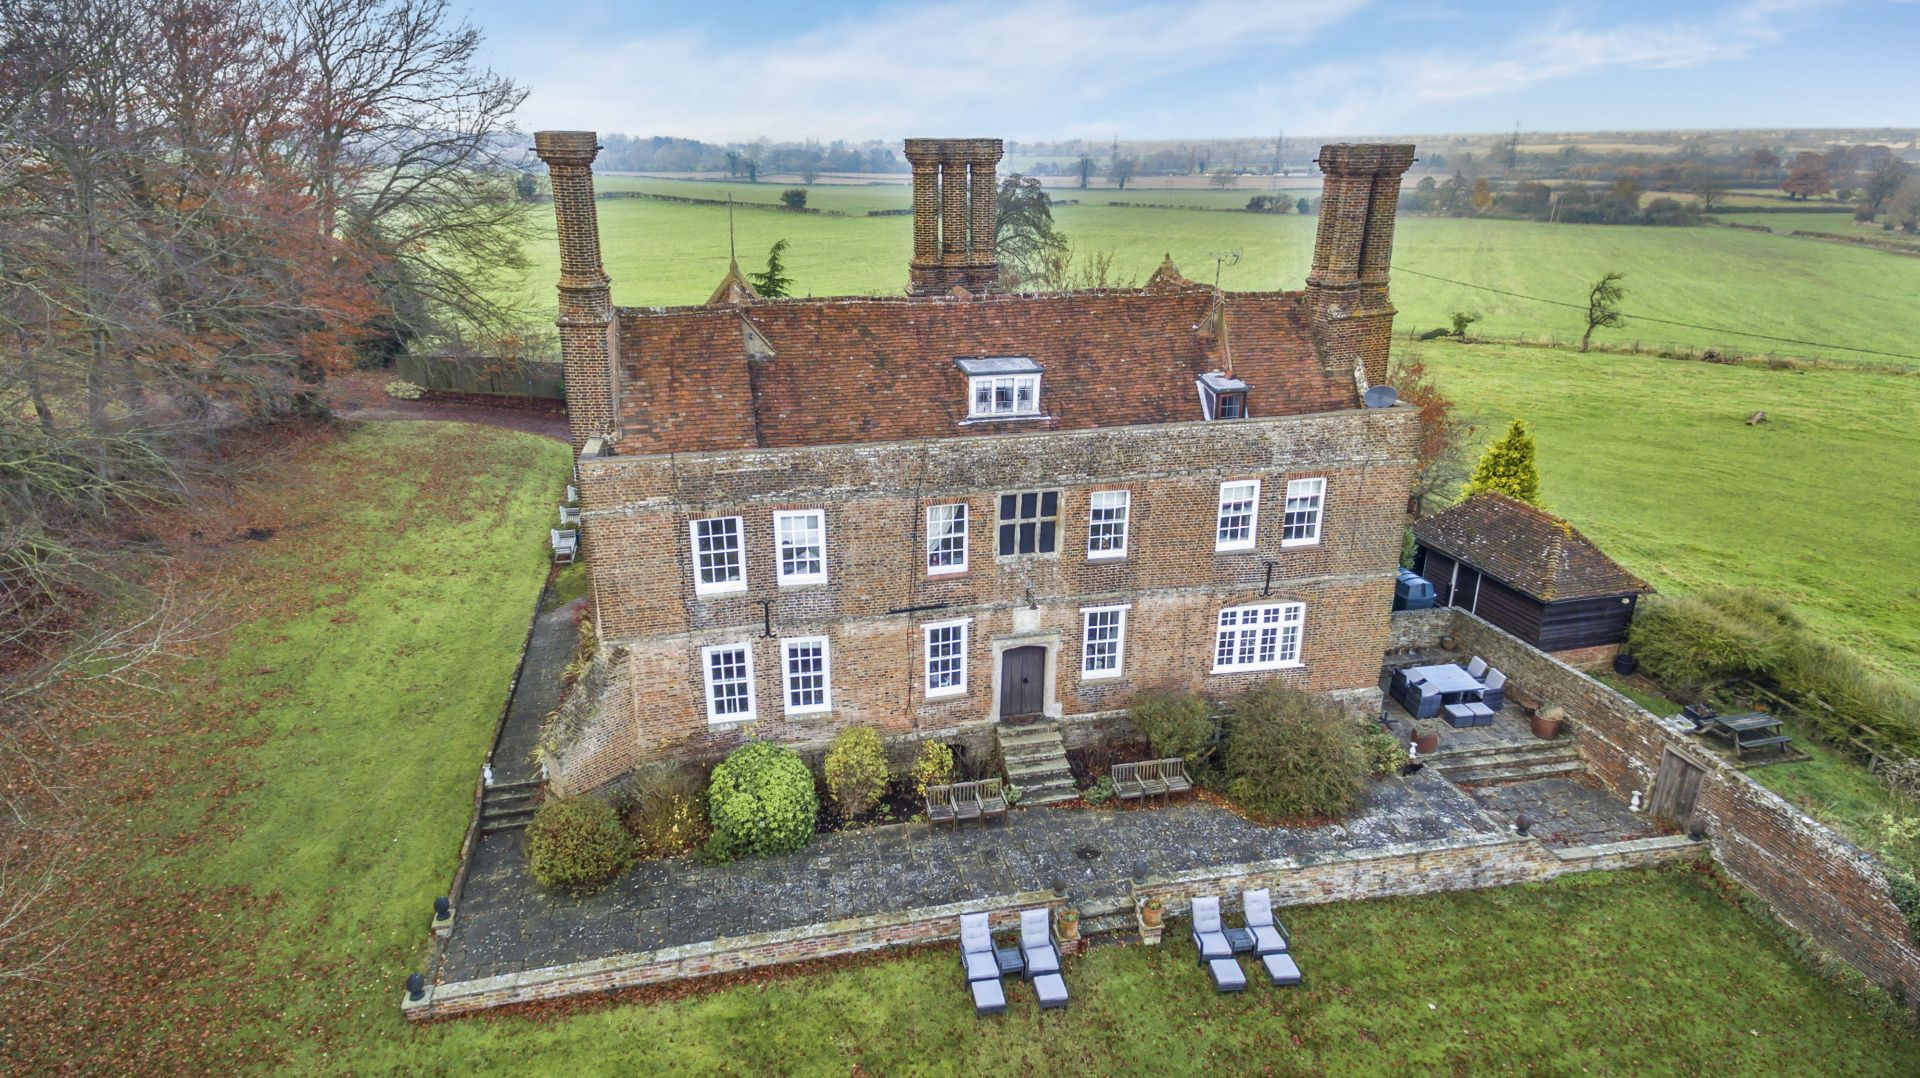 Eight bedroom main manor and a separate four bedroom gatehouse - If You Are Looking For A Home With Character This Elizabethan Manor House Should Be On Your Wish List It Has Five Bedrooms And Formal Gardens